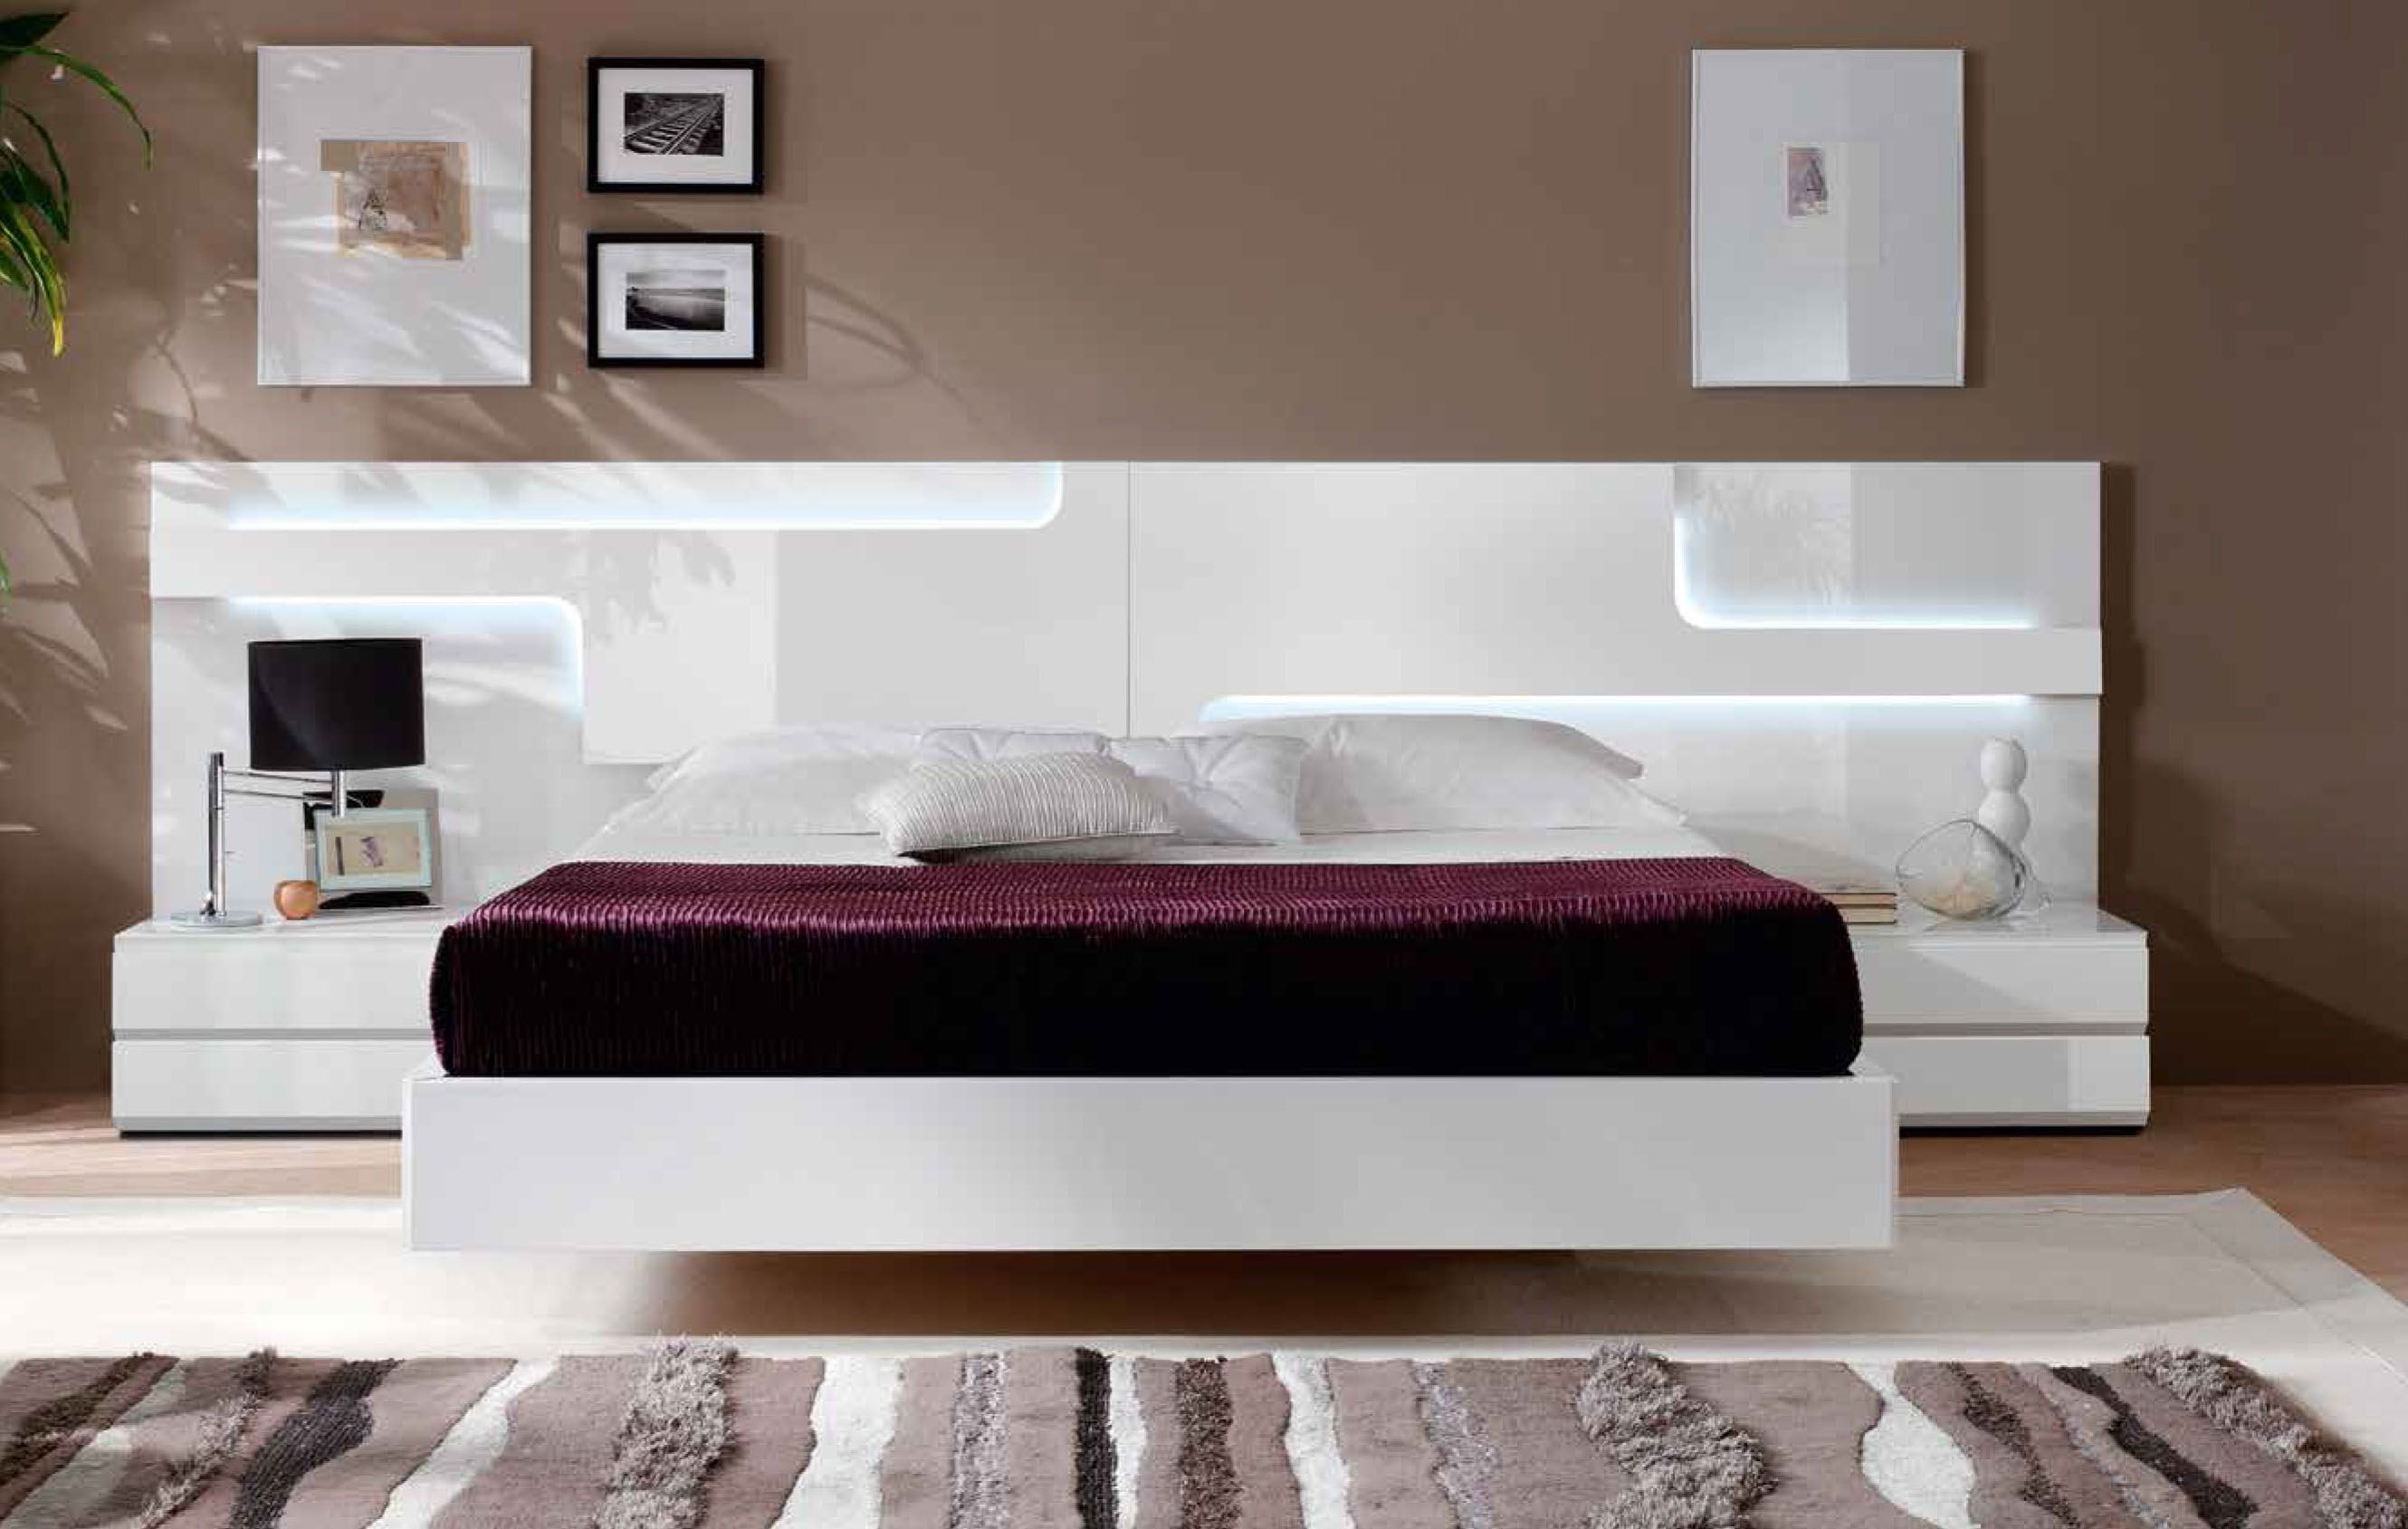 Storage furniture luxury made in spain wood platform and headboard bed with asian style bedroomsmodern white